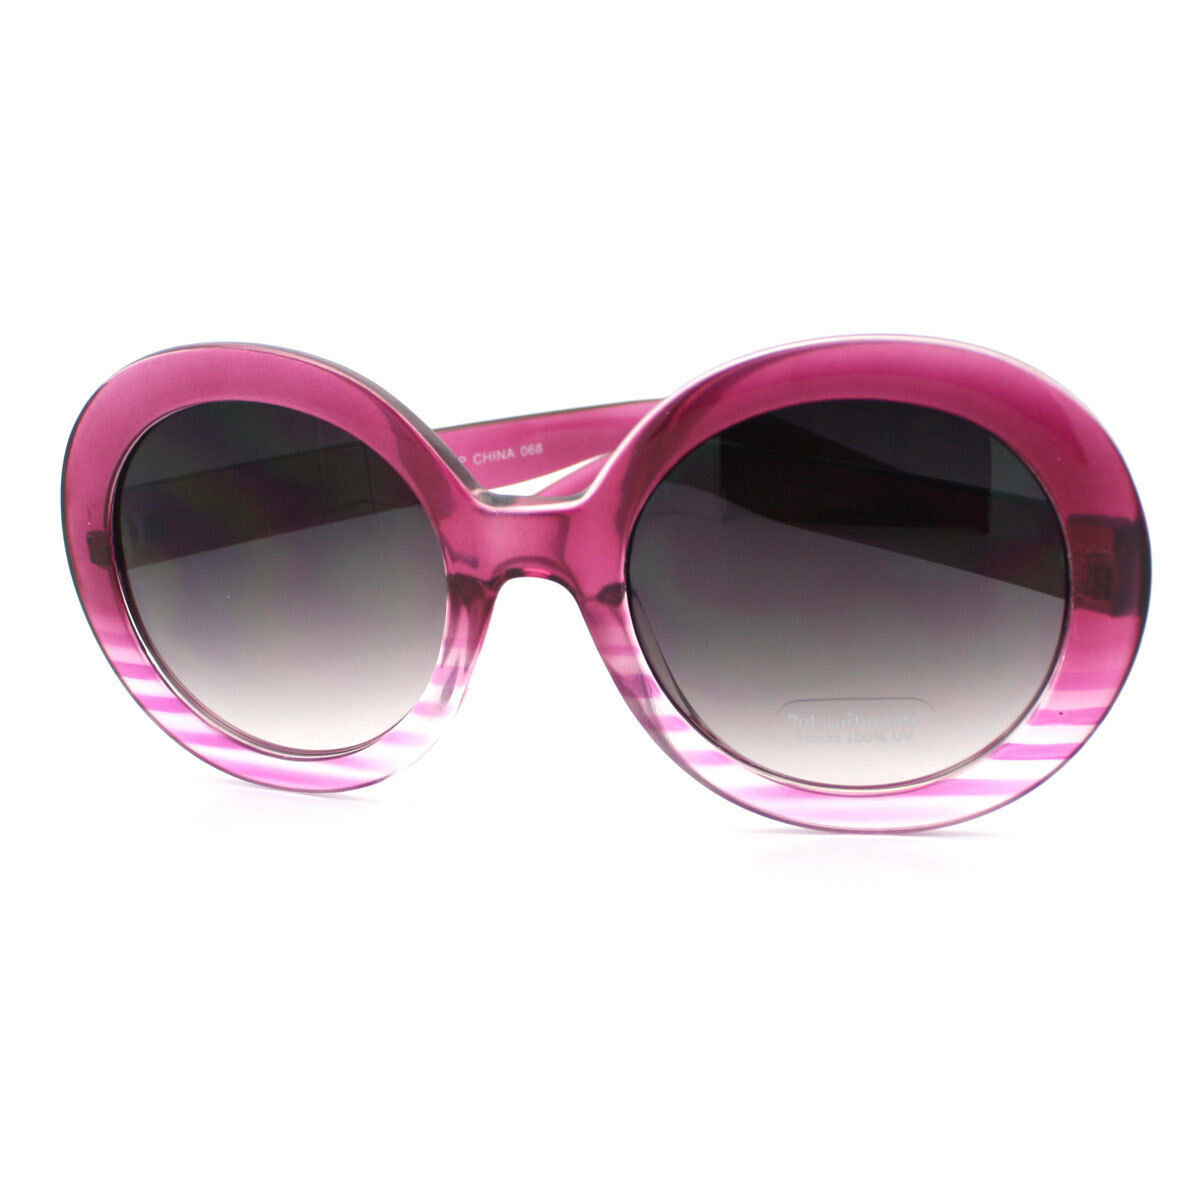 Womens Fashion Sunglasses Oversize Round Designer Frame UV 400